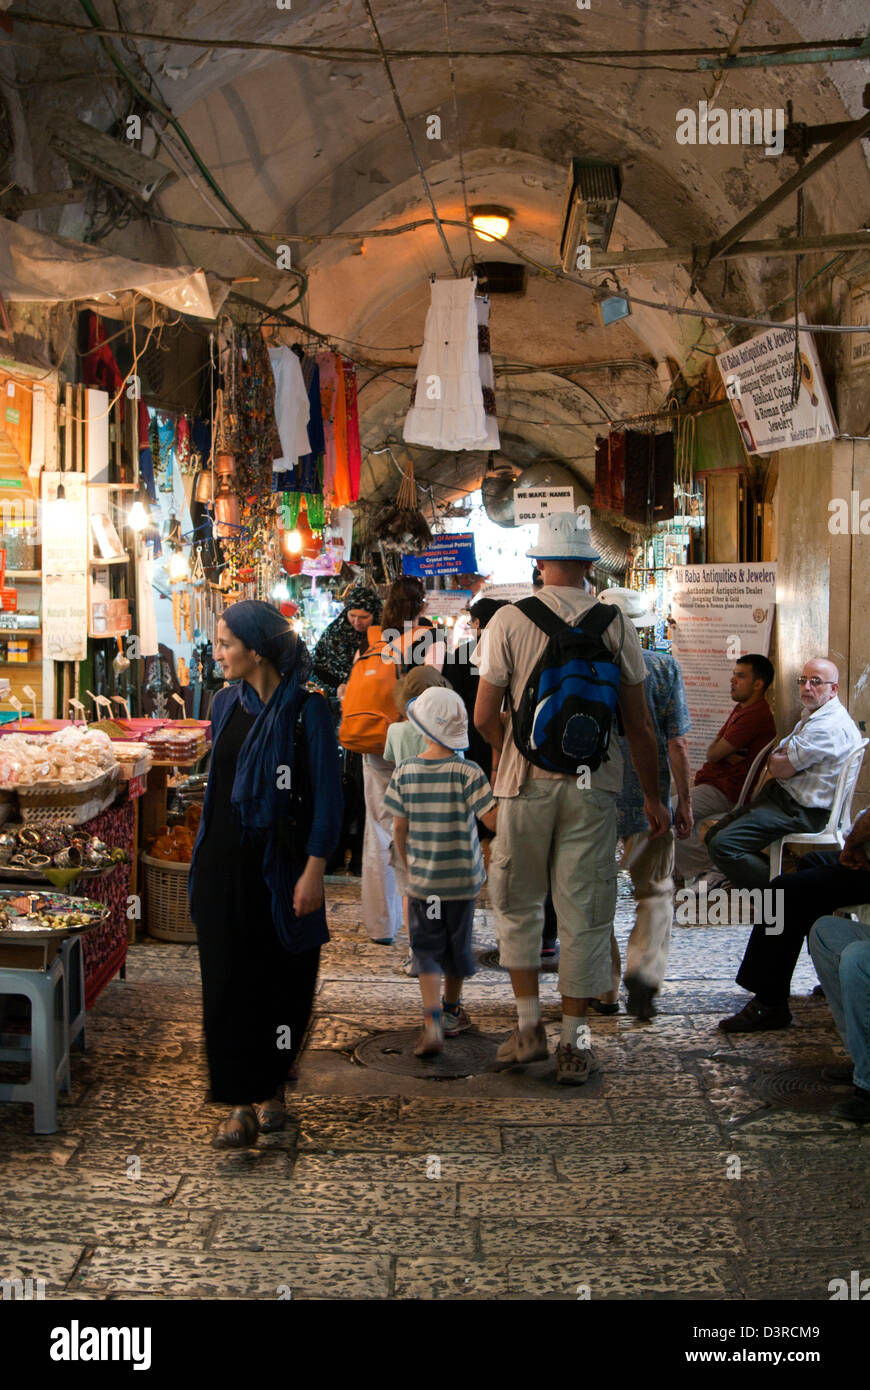 Many tourists and residents wander though the old covered streets in the Jewish quarter. - Stock Image